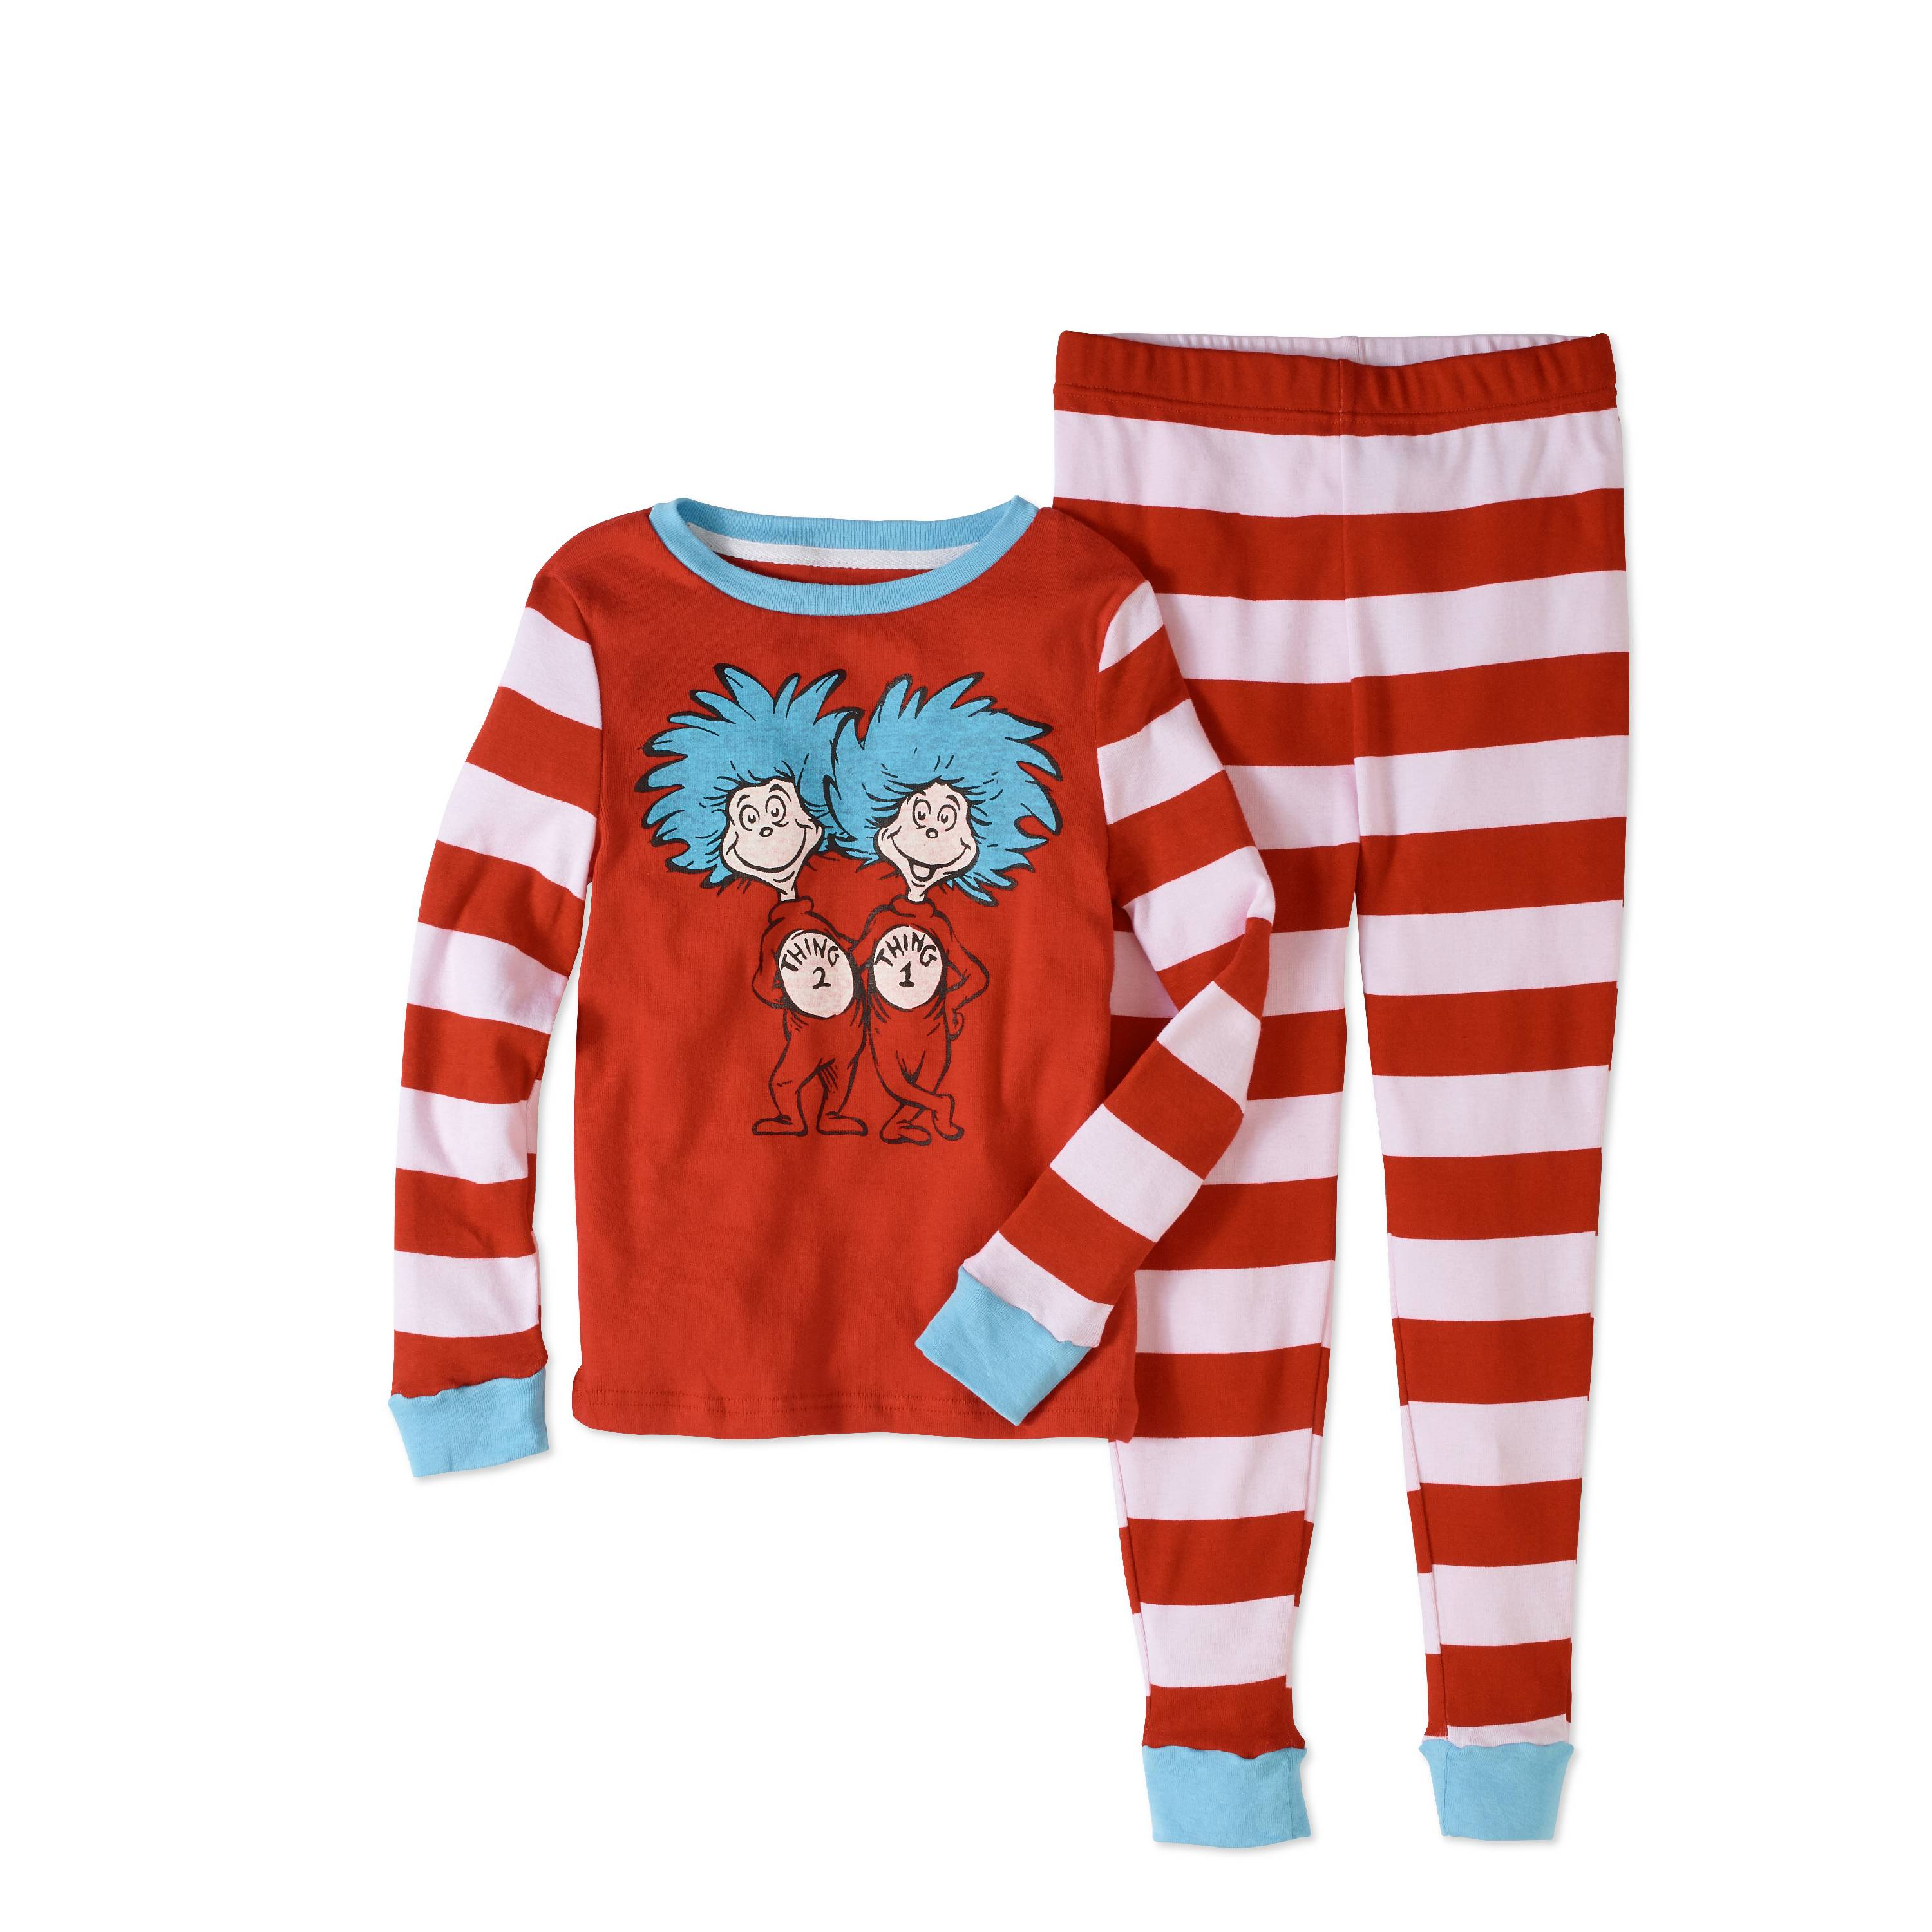 Dr Seuss Girls' Thing 1 and Thing 2 Tight Fit Pajama 2pc Sleepwear Set